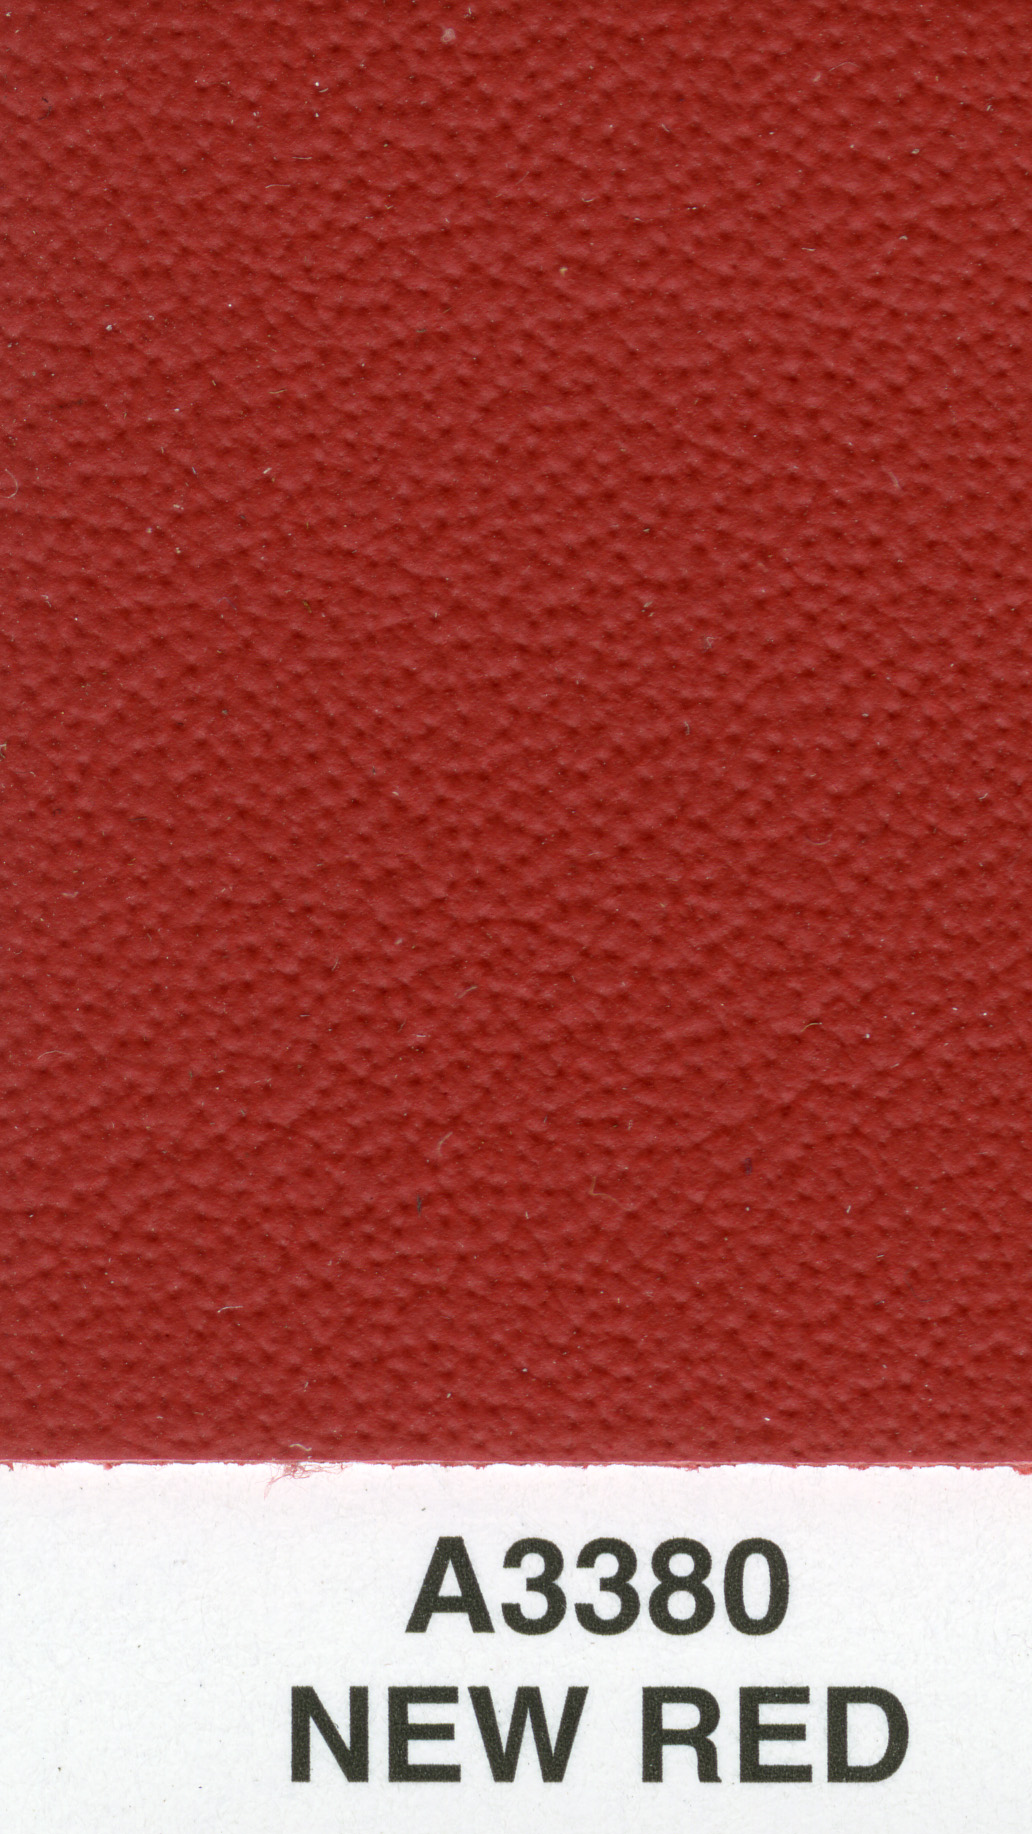 NEW RED EURO AUTOLUX LEATHER